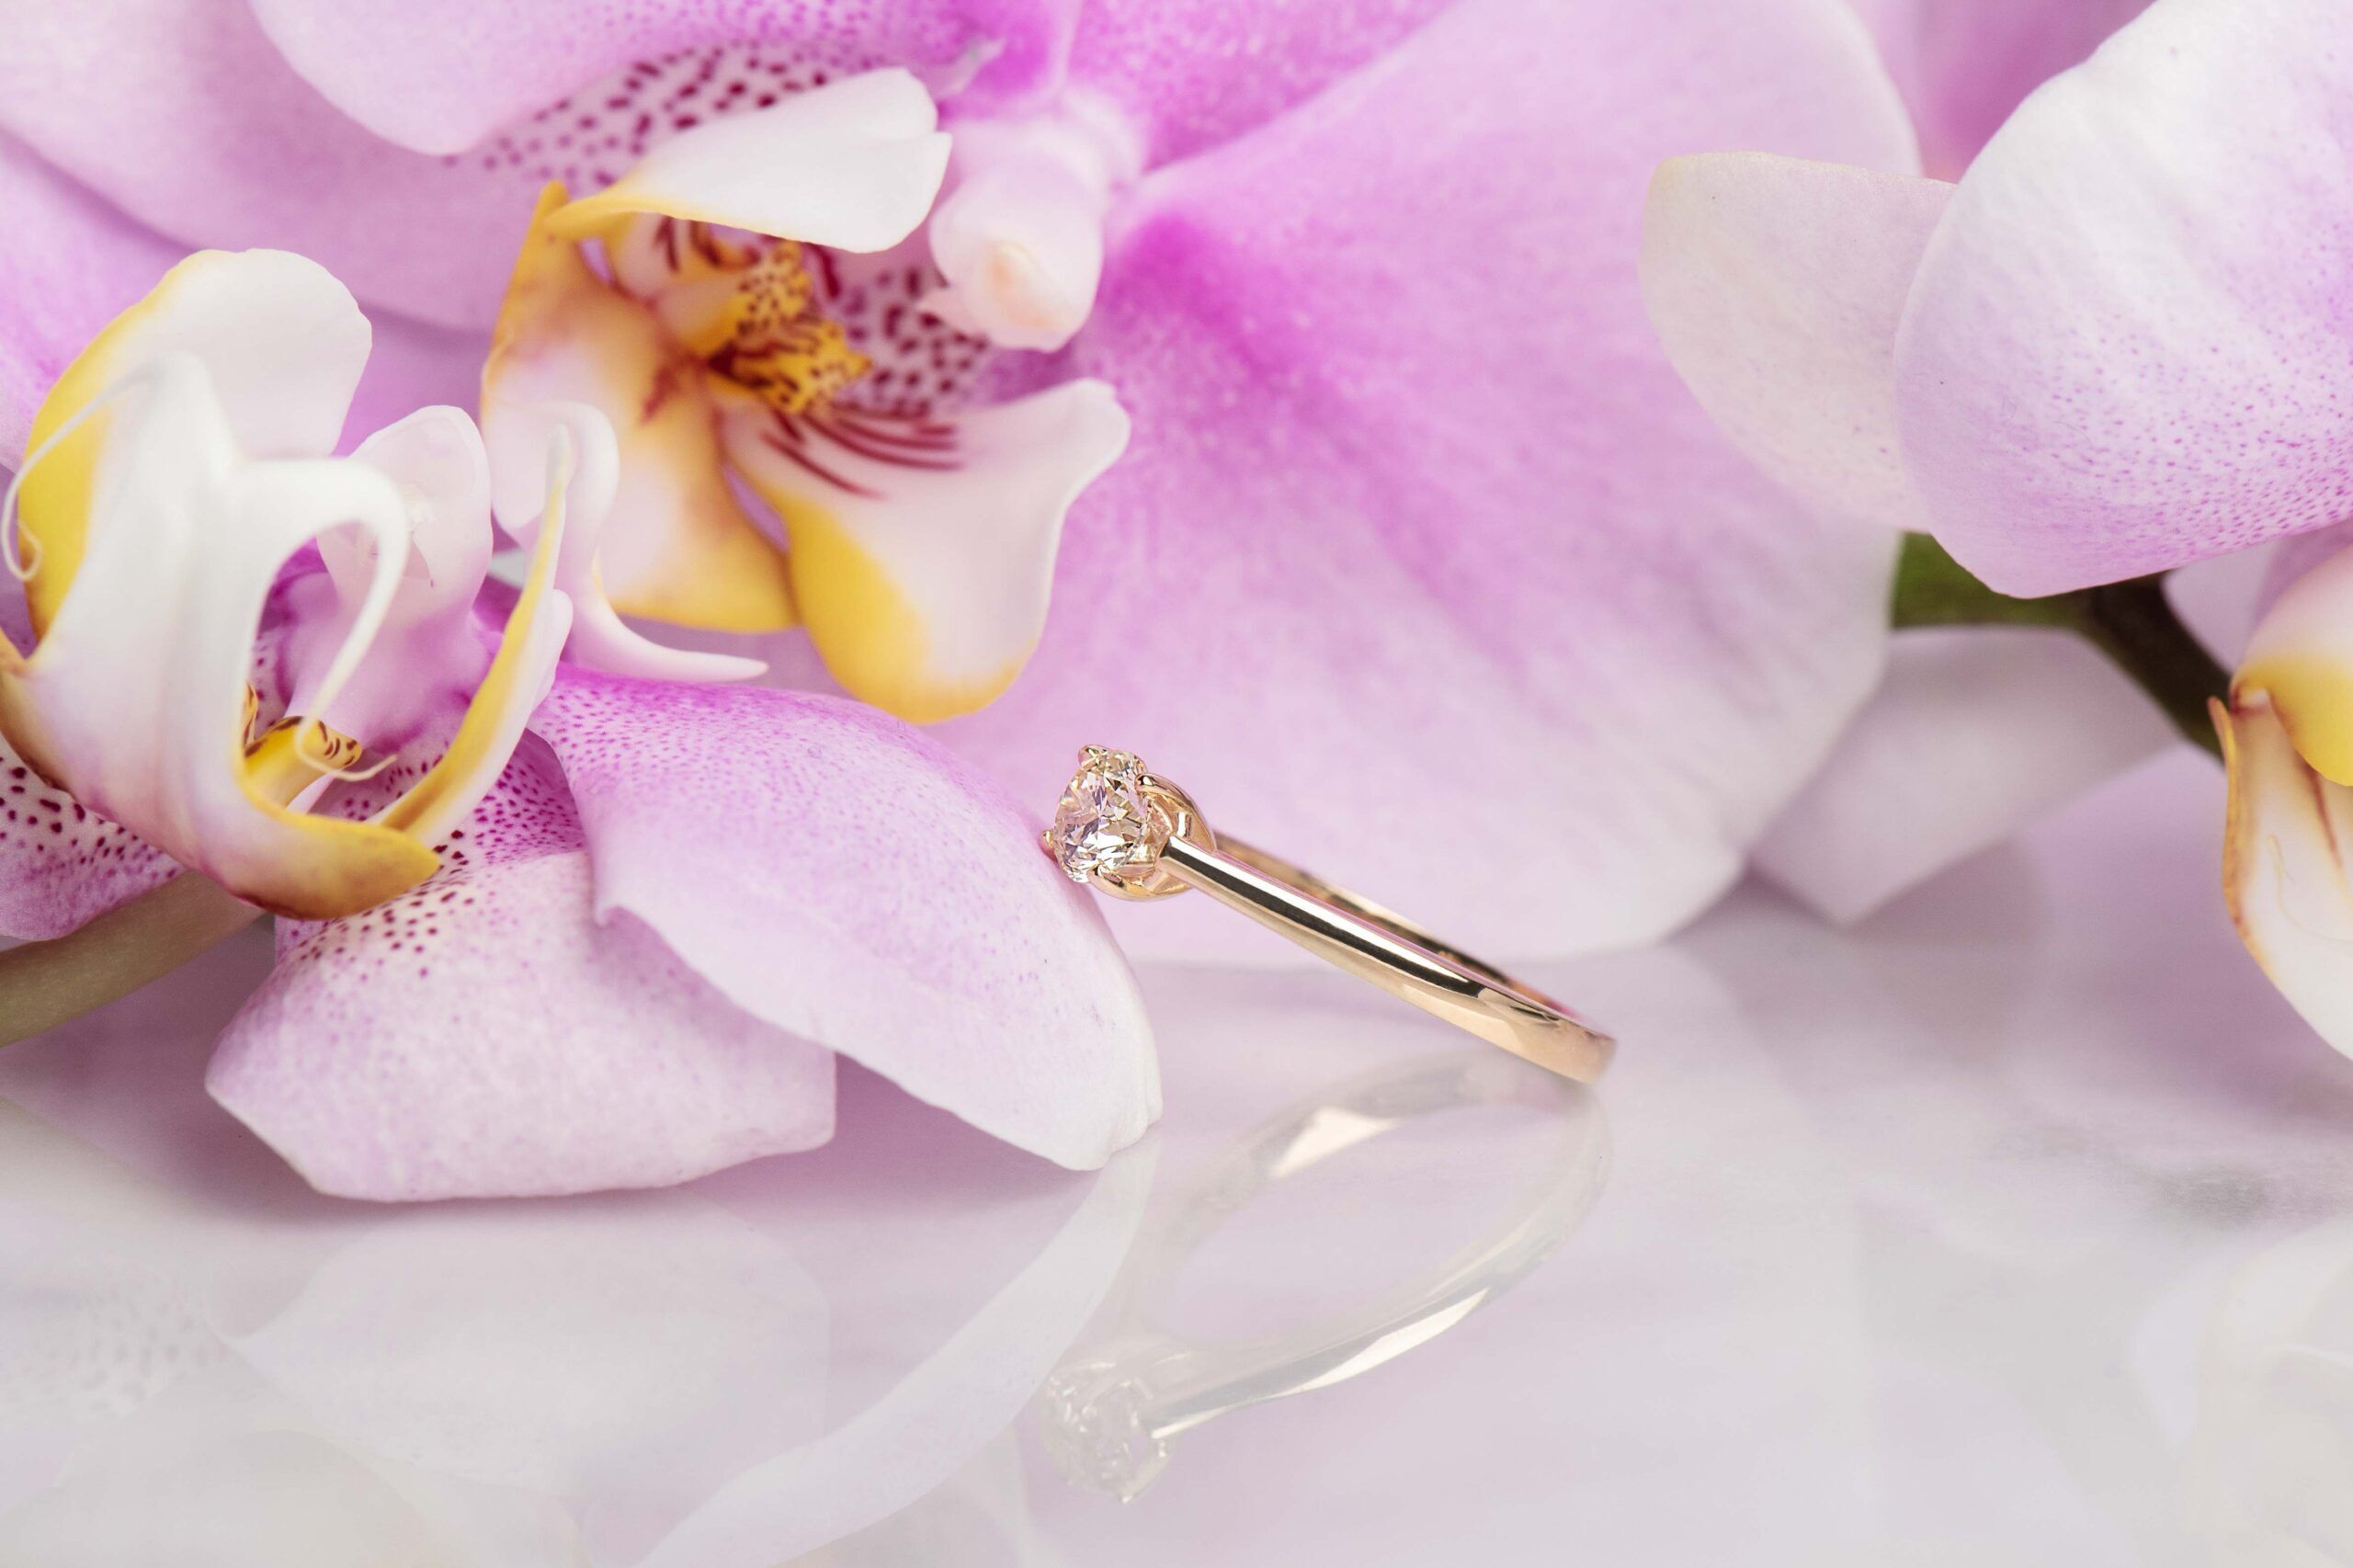 Diamond with gold band on orchids and marble